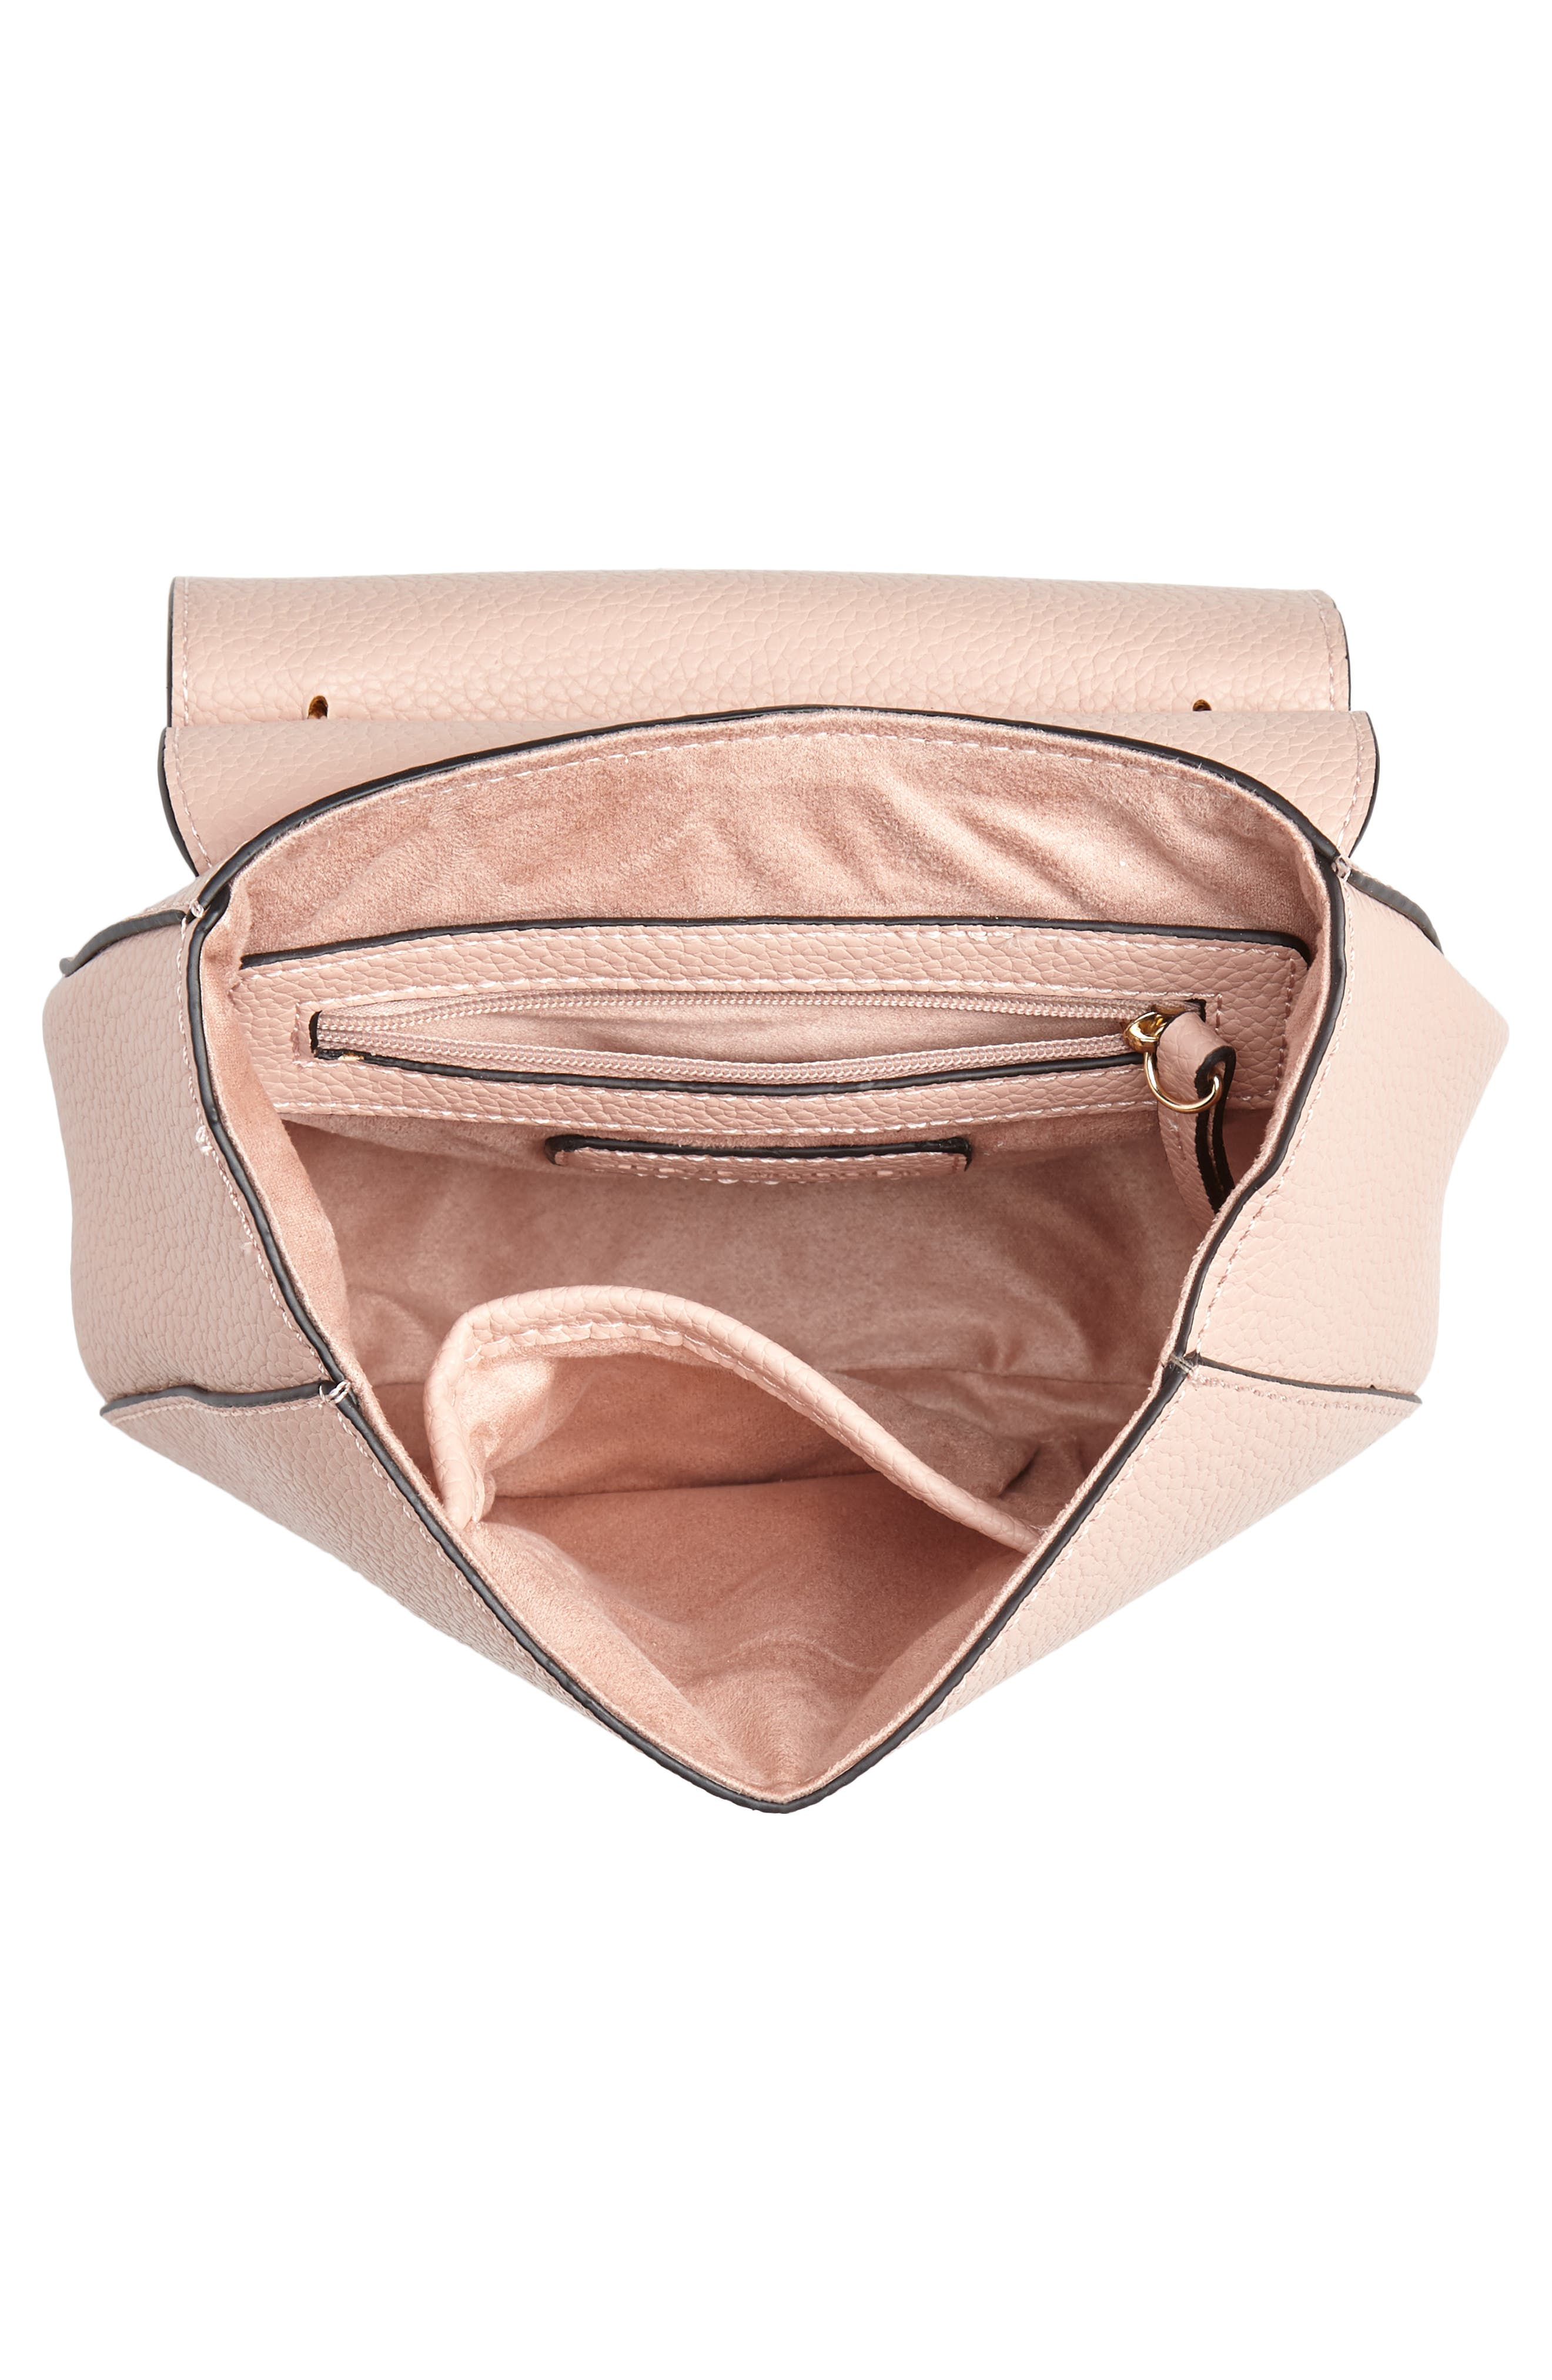 Draped Chain Faux Leather Crossbody Bag,                             Alternate thumbnail 5, color,                             BLUSH